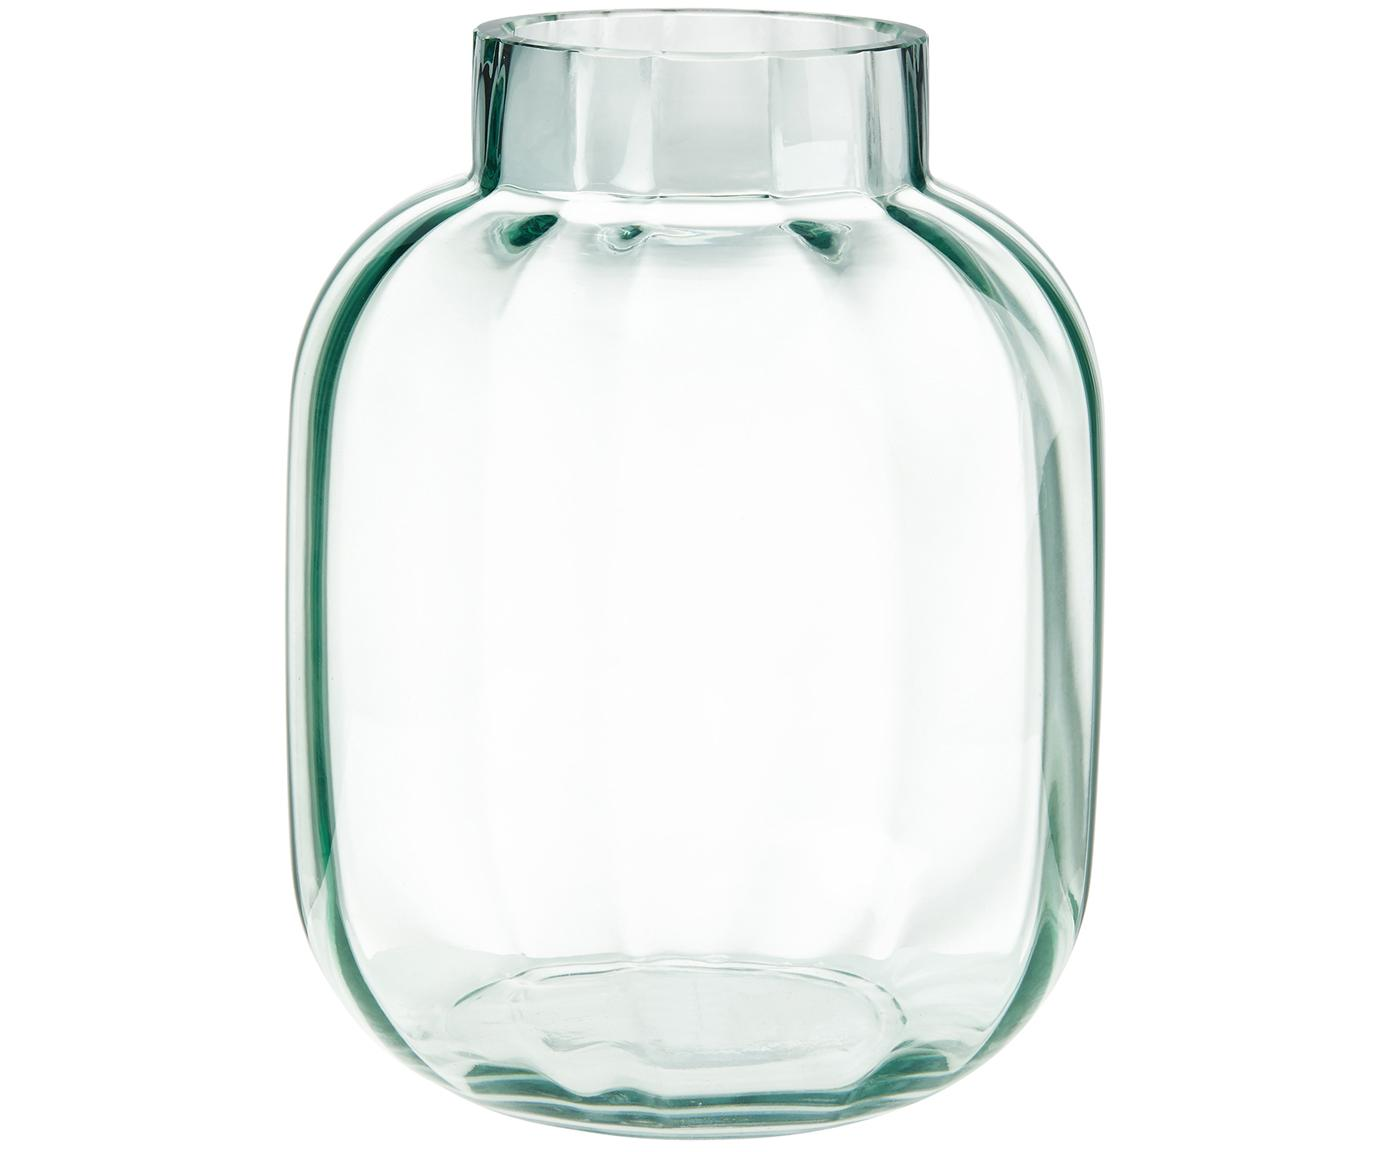 Glas-Vase Betty in Hellgrün, Glas, Hellgrün, transparent, Ø 18 x H 22 cm